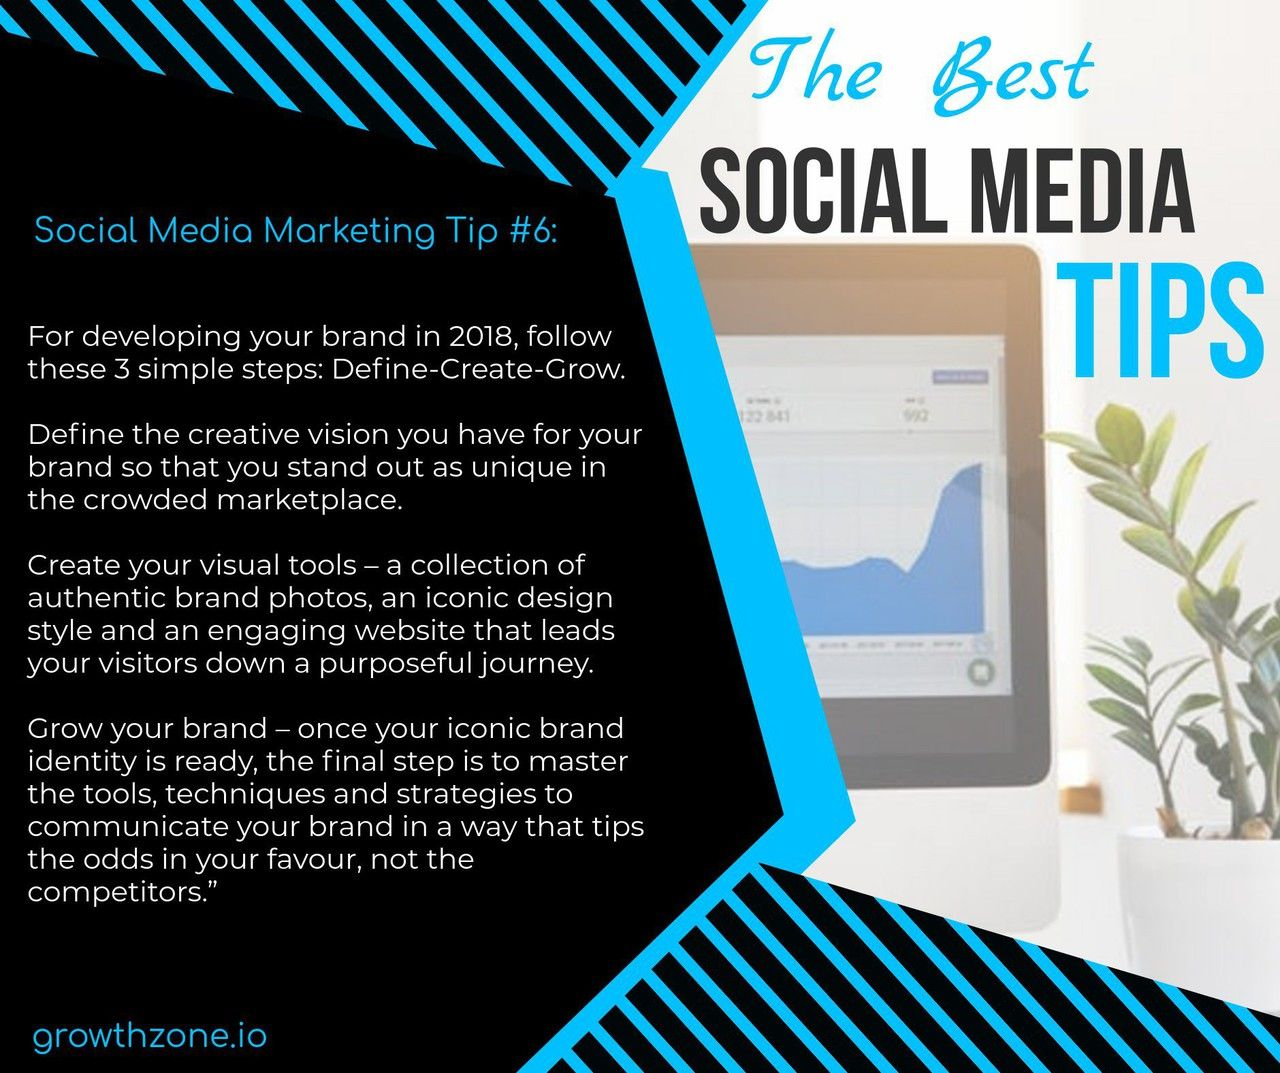 Here Are Some Helpful Social Media Tips! Once You've